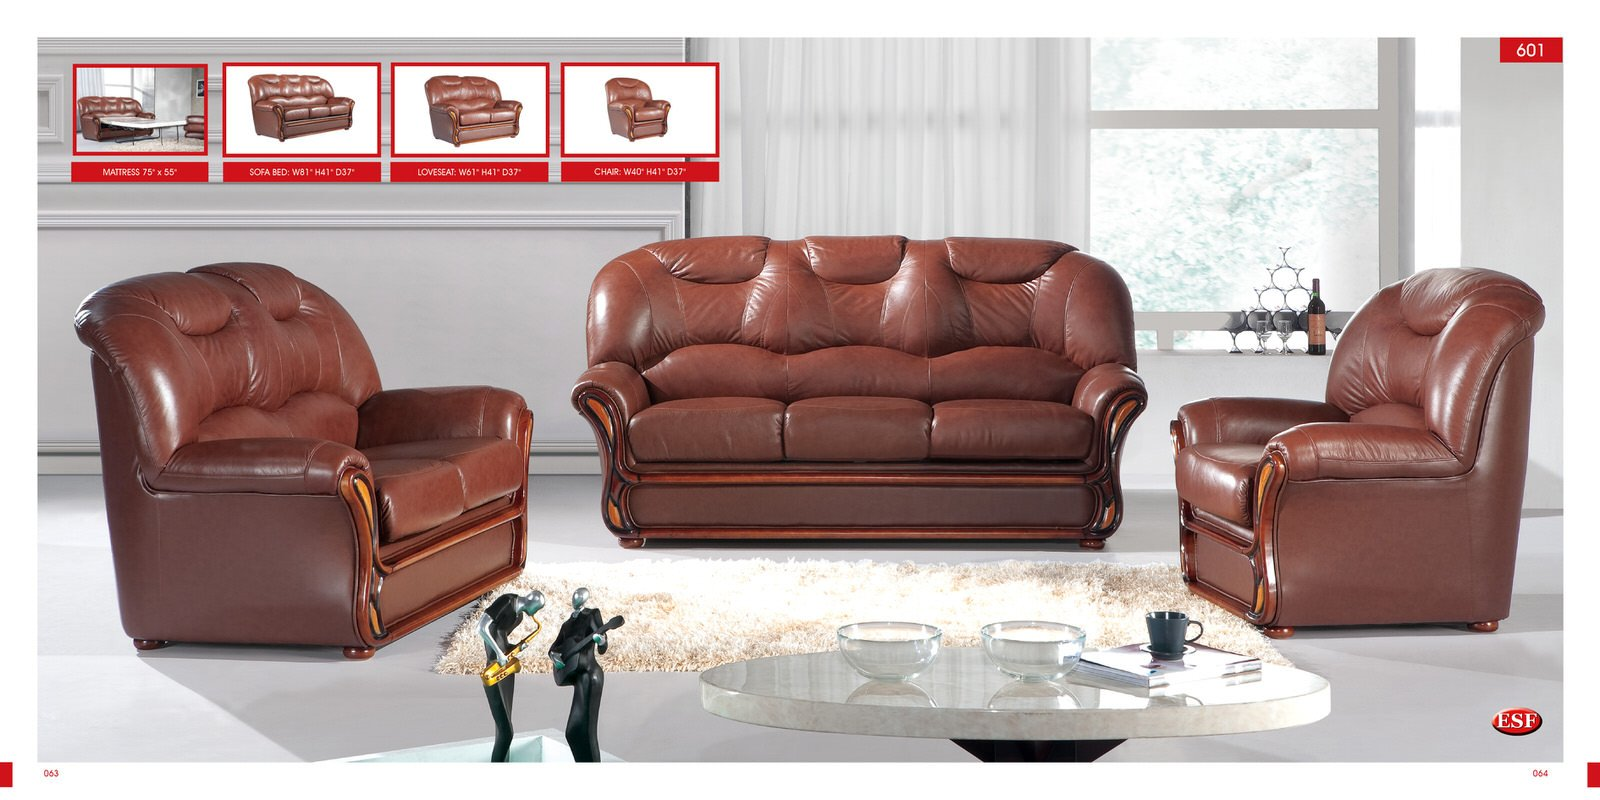 Sofa bed 601 brown leather by esf for Leather living room furniture